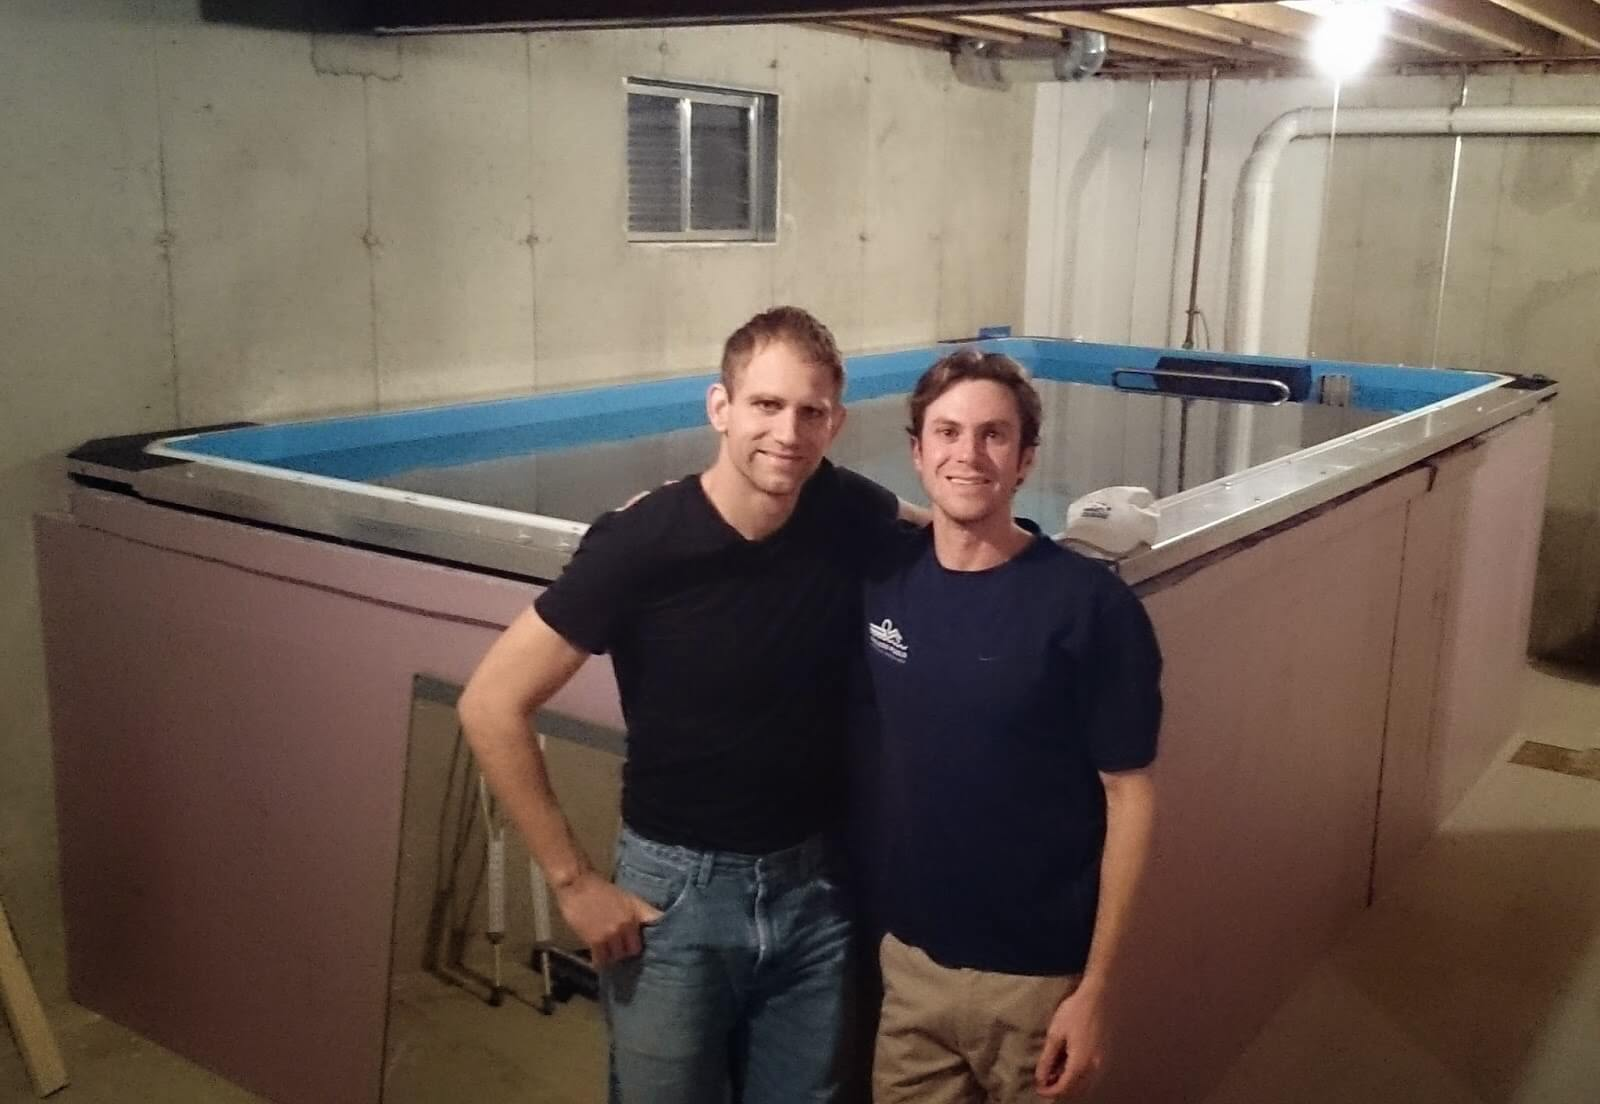 Professional triathlete Andrew Starykowicz with the Endless Pool in his basement